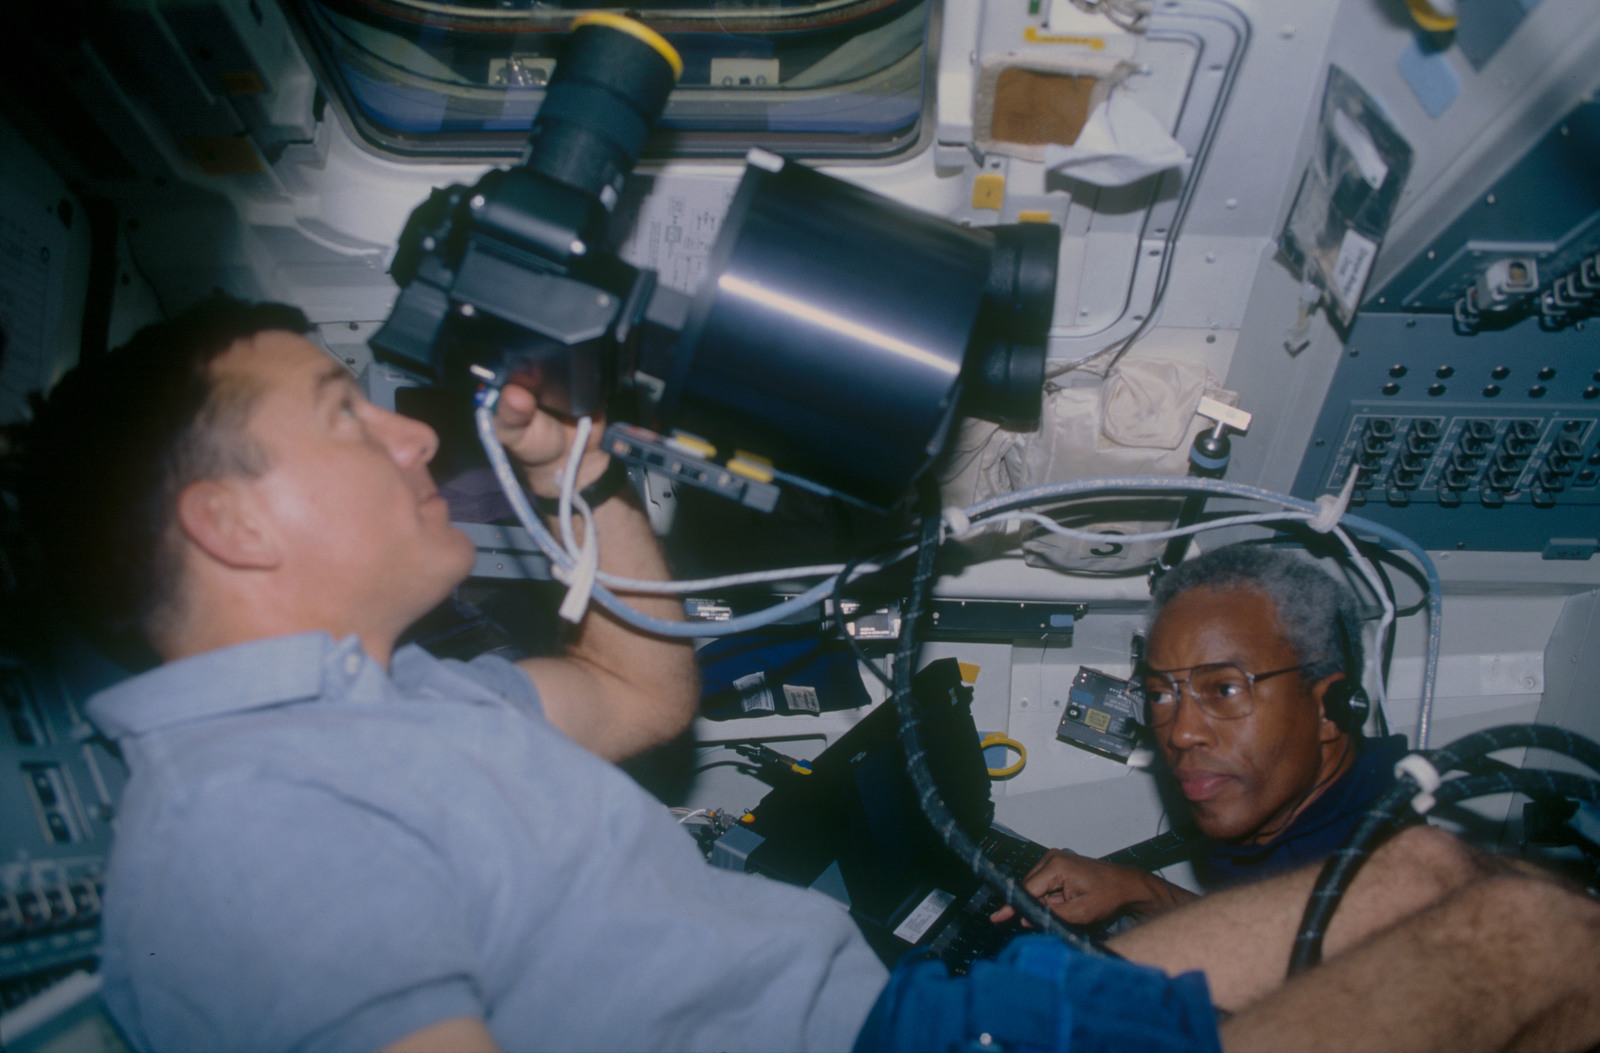 STS053-11-036 - STS-053 - Crewmembers with the HERCULES photographic system